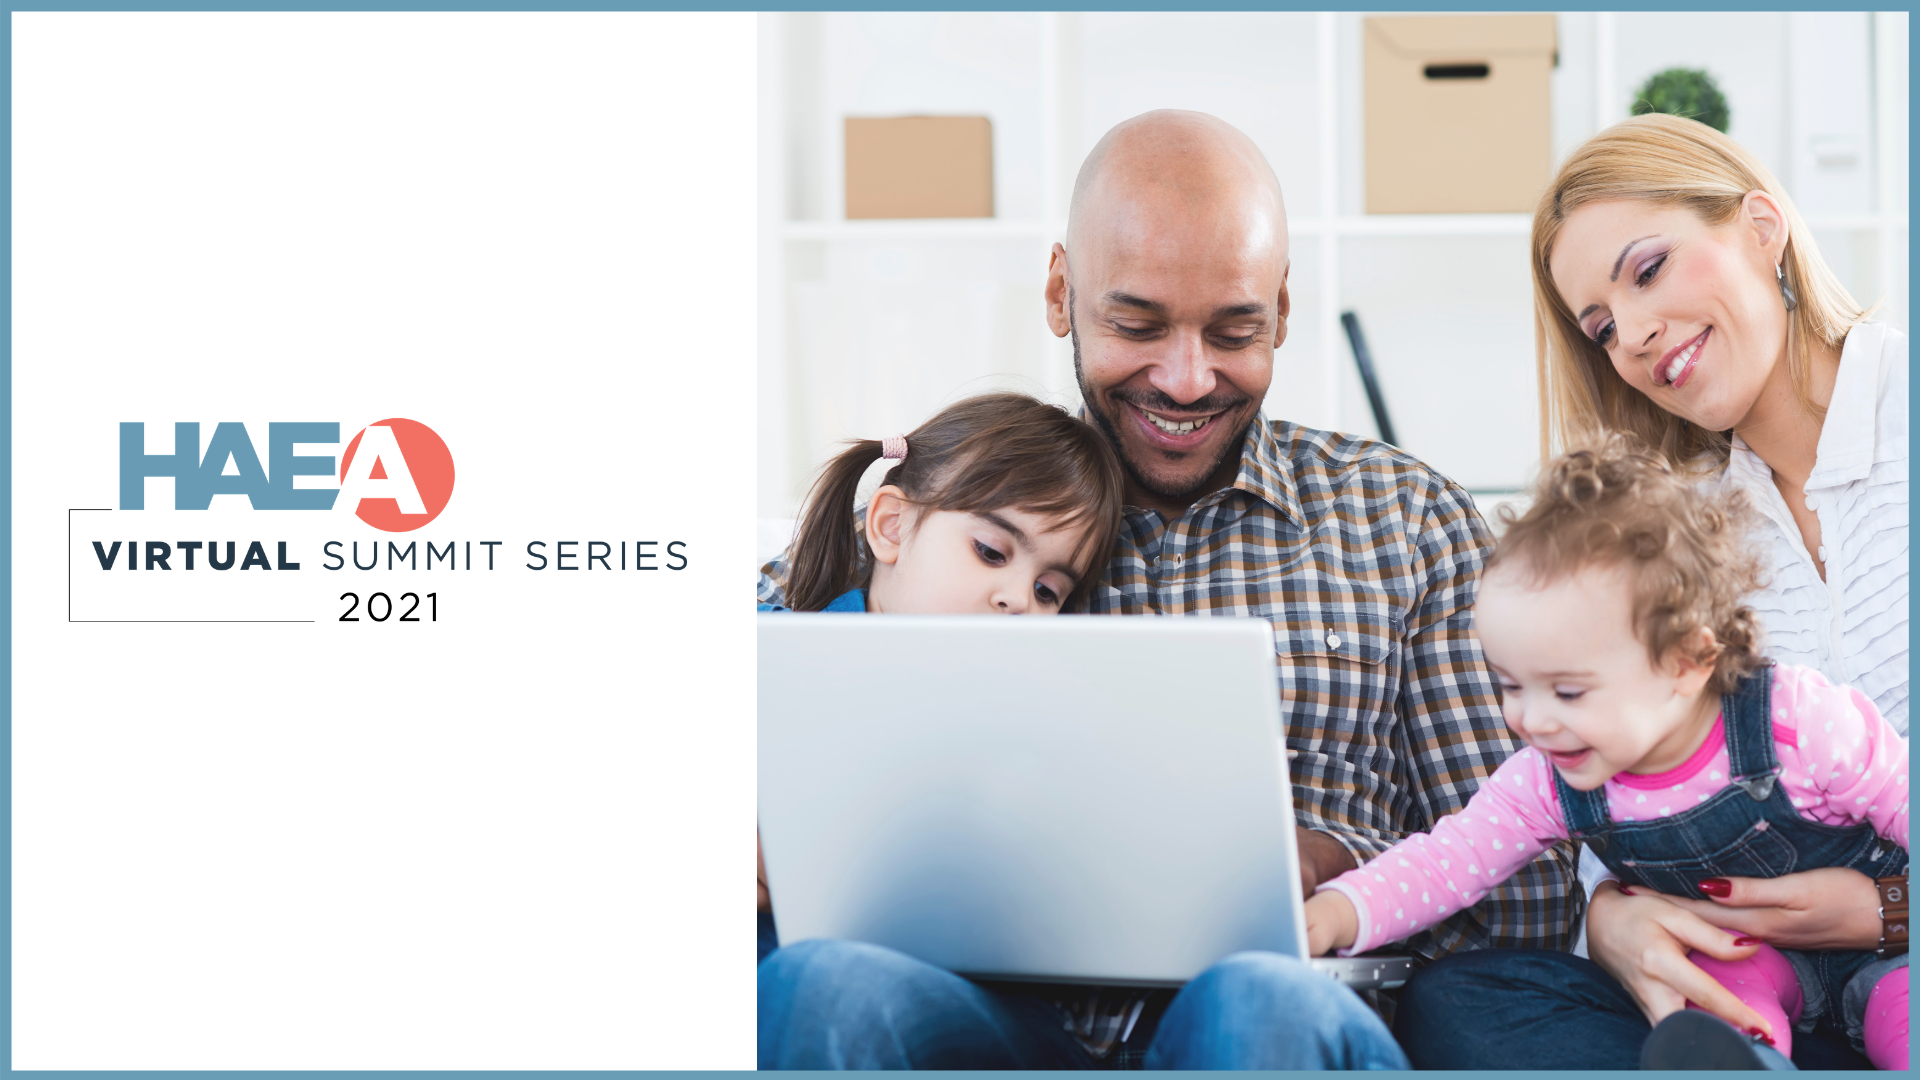 Save the date for the next 2021 Virtual Summit Series Session on Wednesday, June 16th!